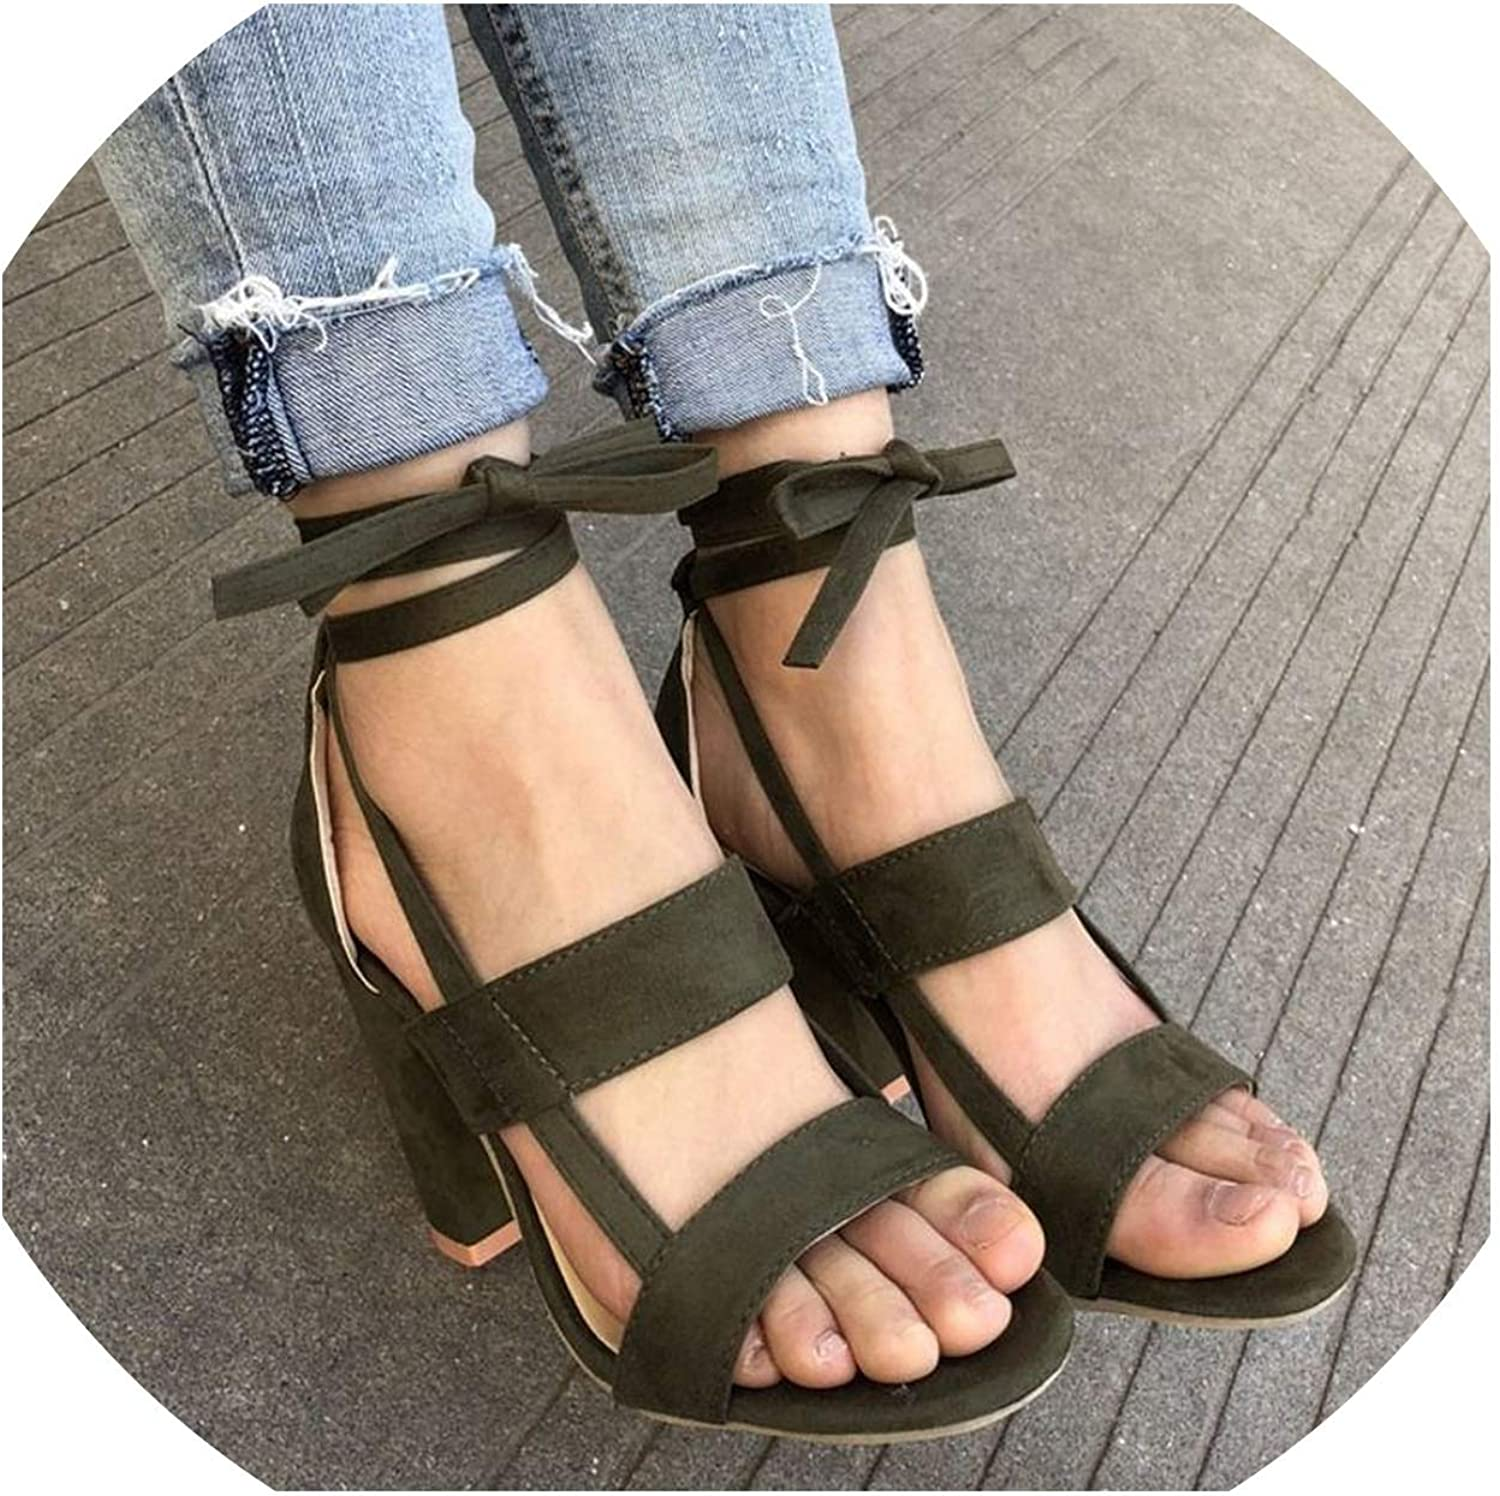 bluee-shore shoes Woman Ladies Sandals High Heel Gladiator Cross-Tied Lace-Up Casual Ankle Strap Sandals